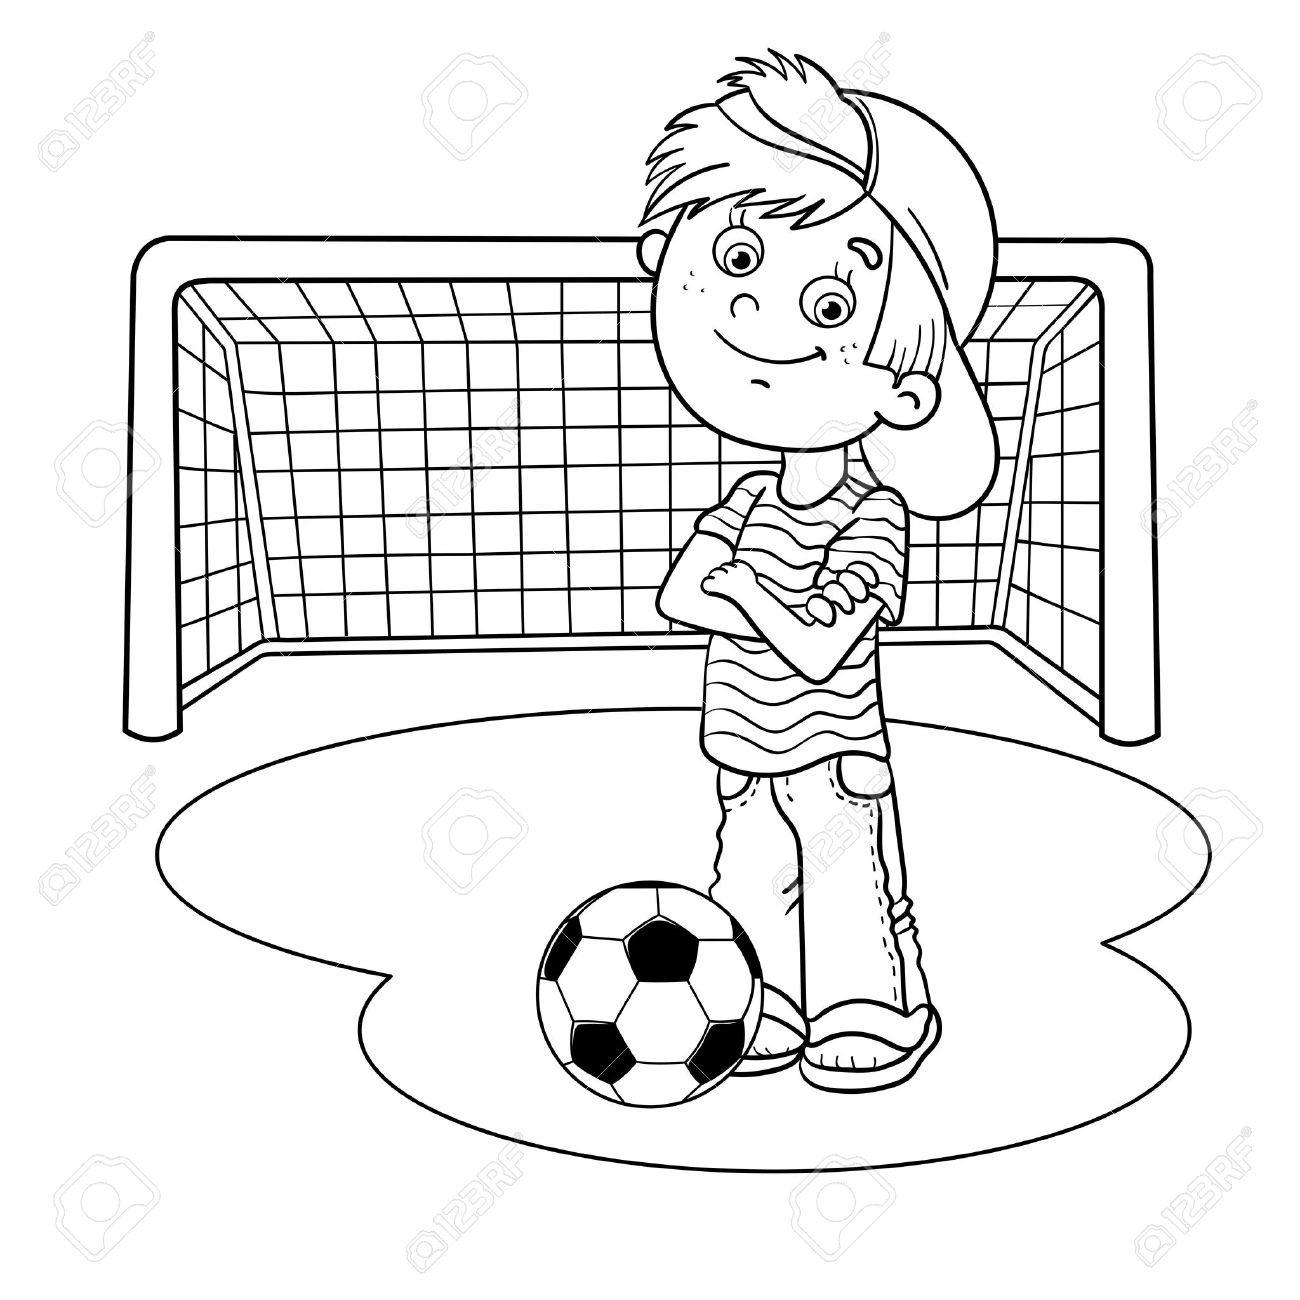 Coloriage Esquisse D Un Garcon De Bande Dessinee Avec Un Ballon De Soccer Et De But De Football Clip Art Libres De Droits Vecteurs Et Illustration Image 46661640